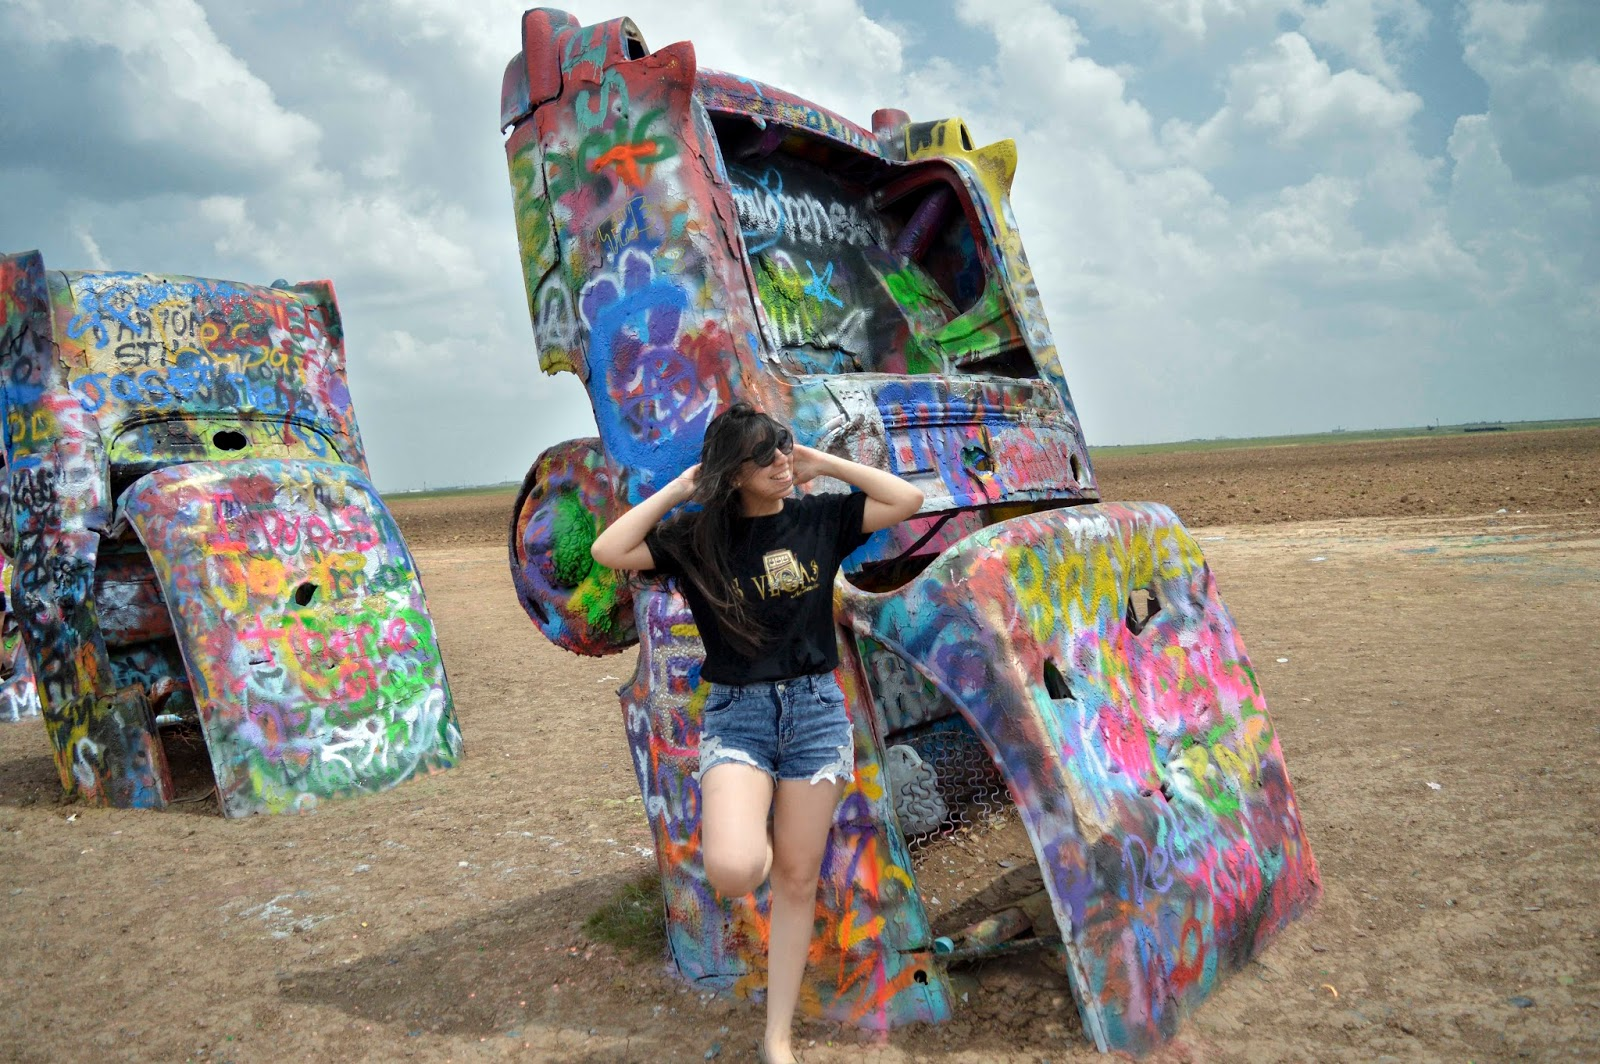 silvia-armas-usa-diary-trip-sunset-travel-fashion-blogger-ecuador-latina-las-vegas-los-angeles-texas-california-style-landscapes-family-cadillac-ranch